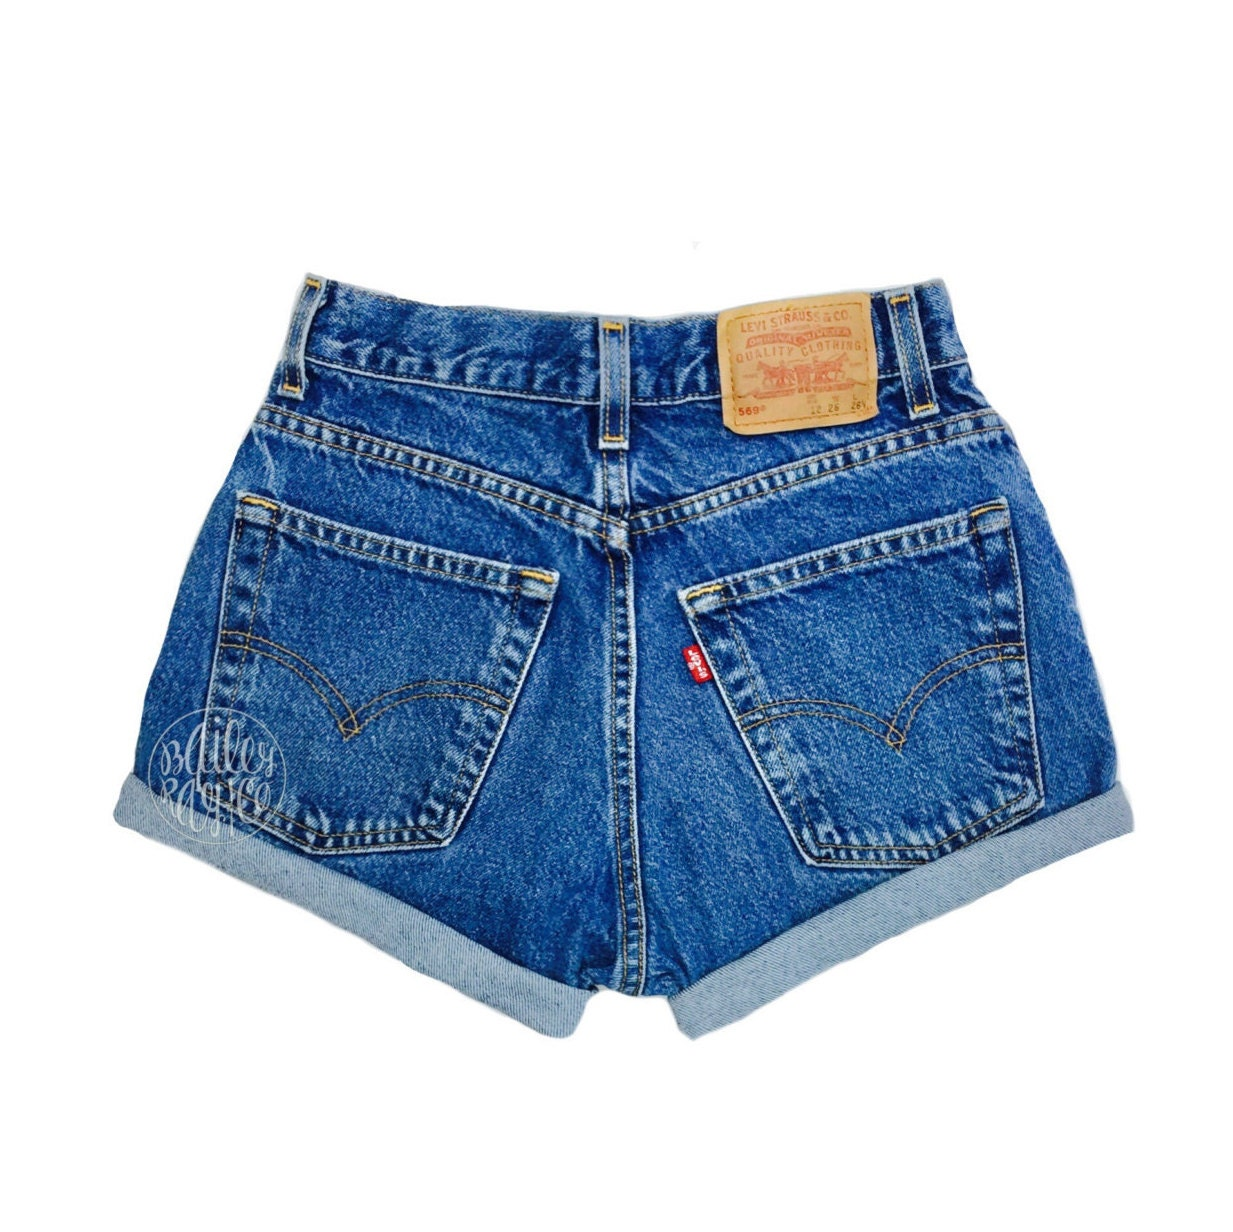 levis high waisted cuffed denim shorts rolled up denim shorts. Black Bedroom Furniture Sets. Home Design Ideas